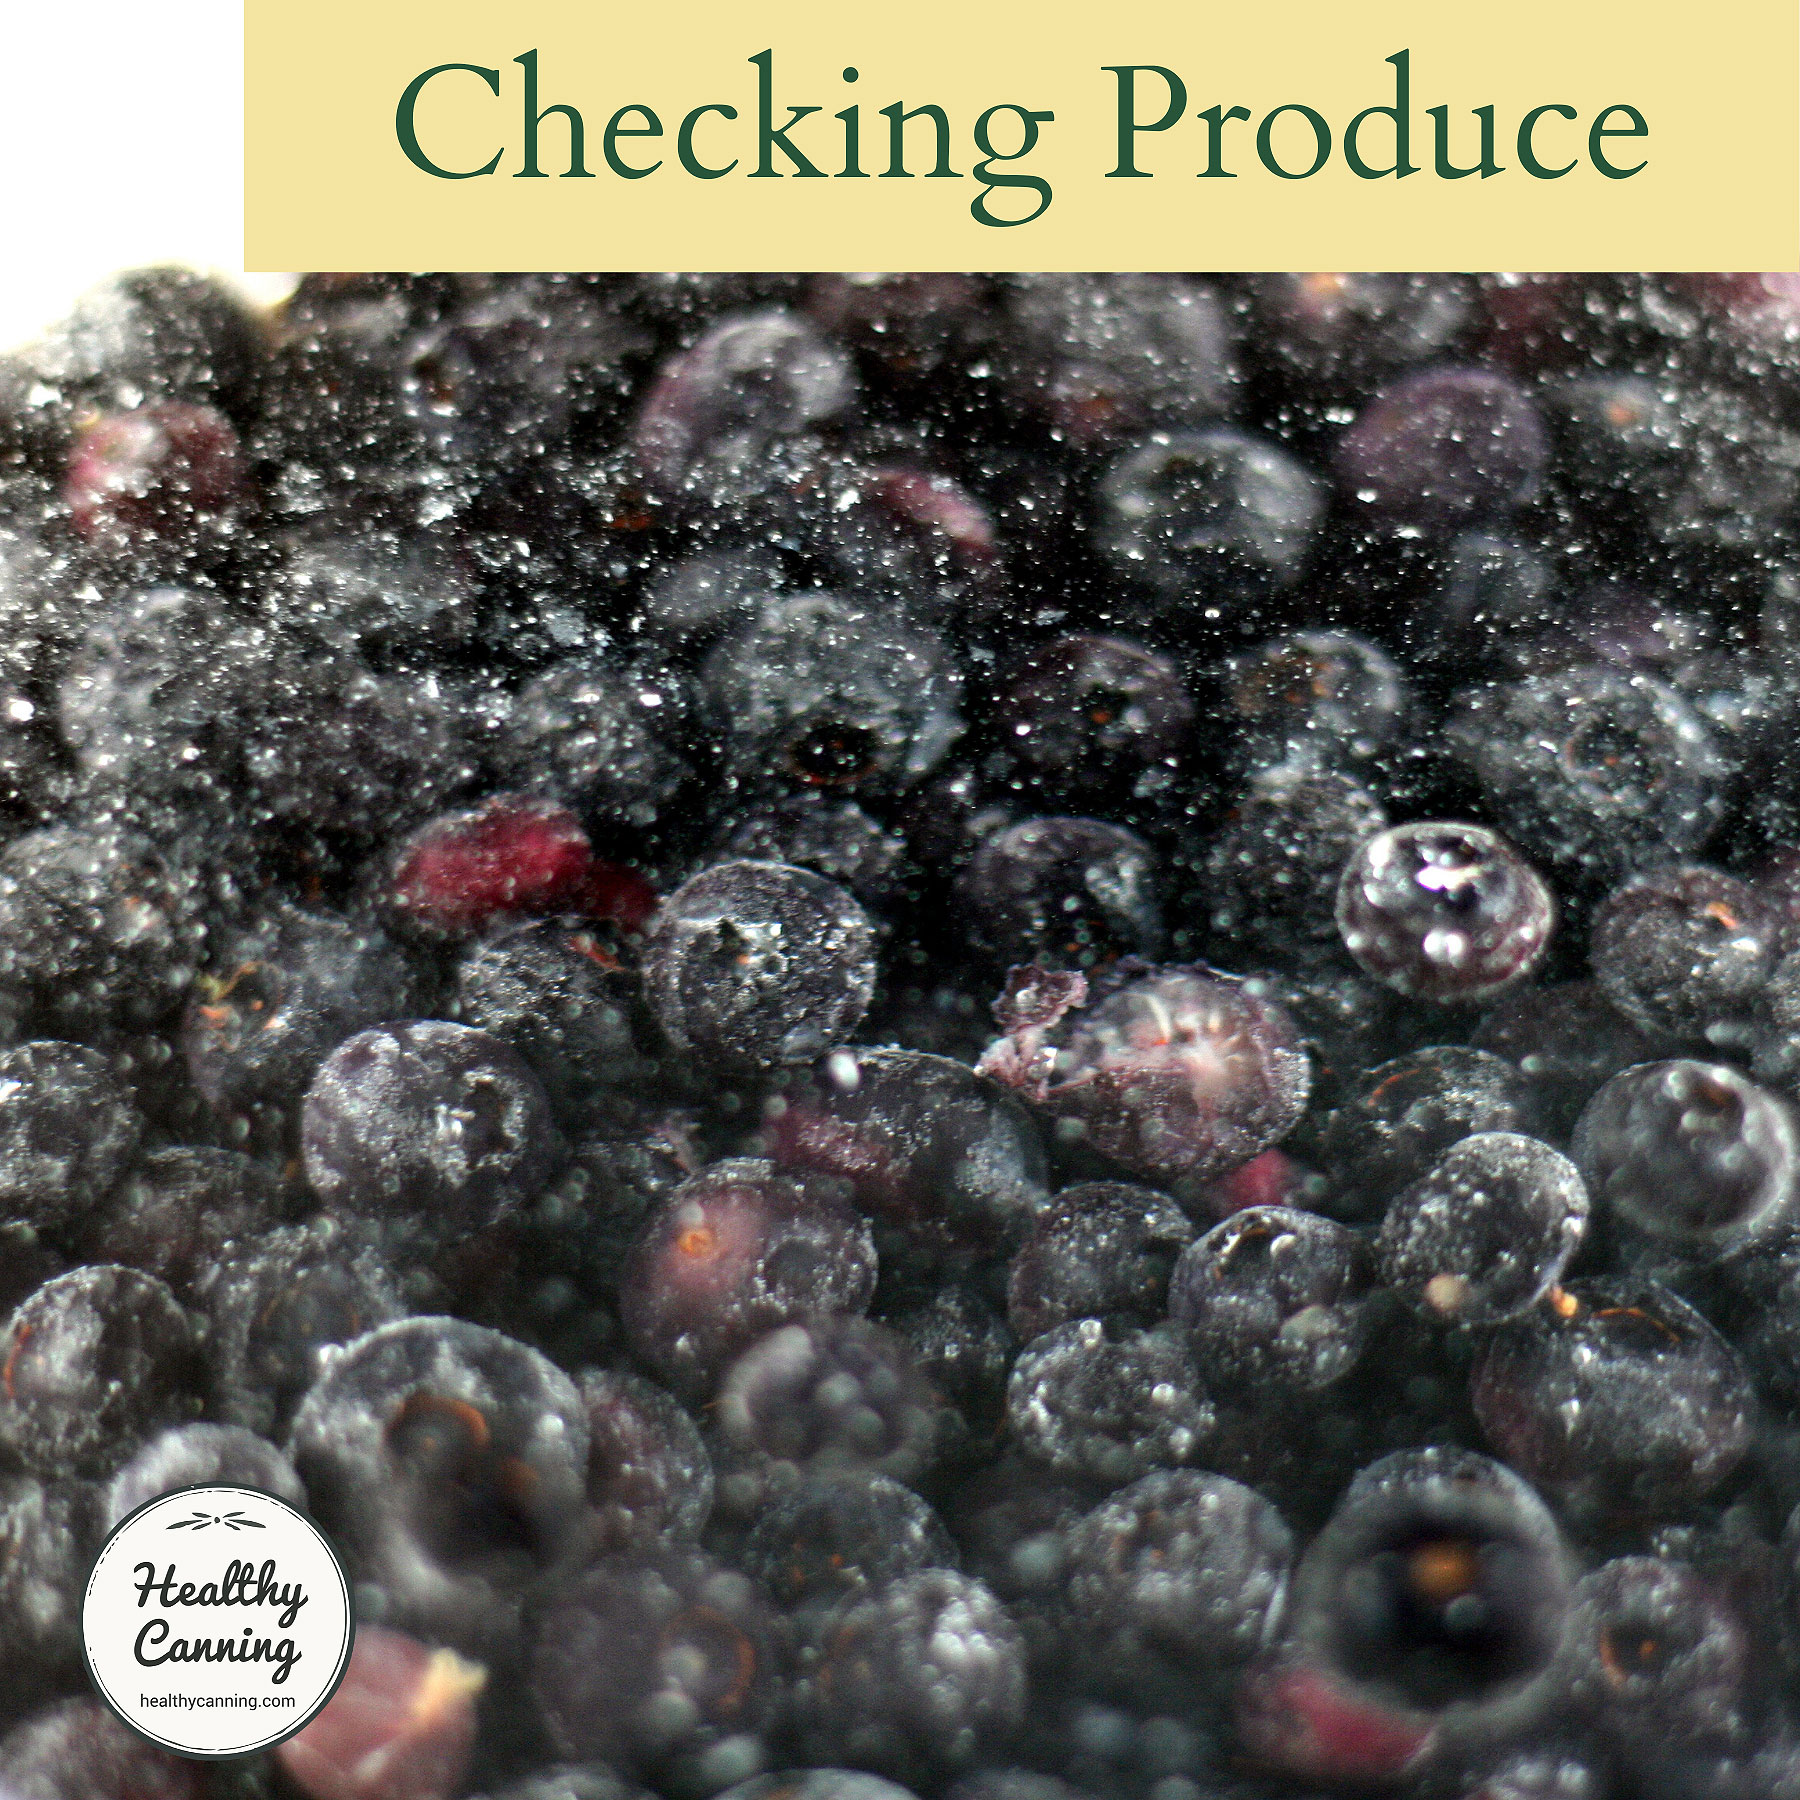 checked blueberries in cold water